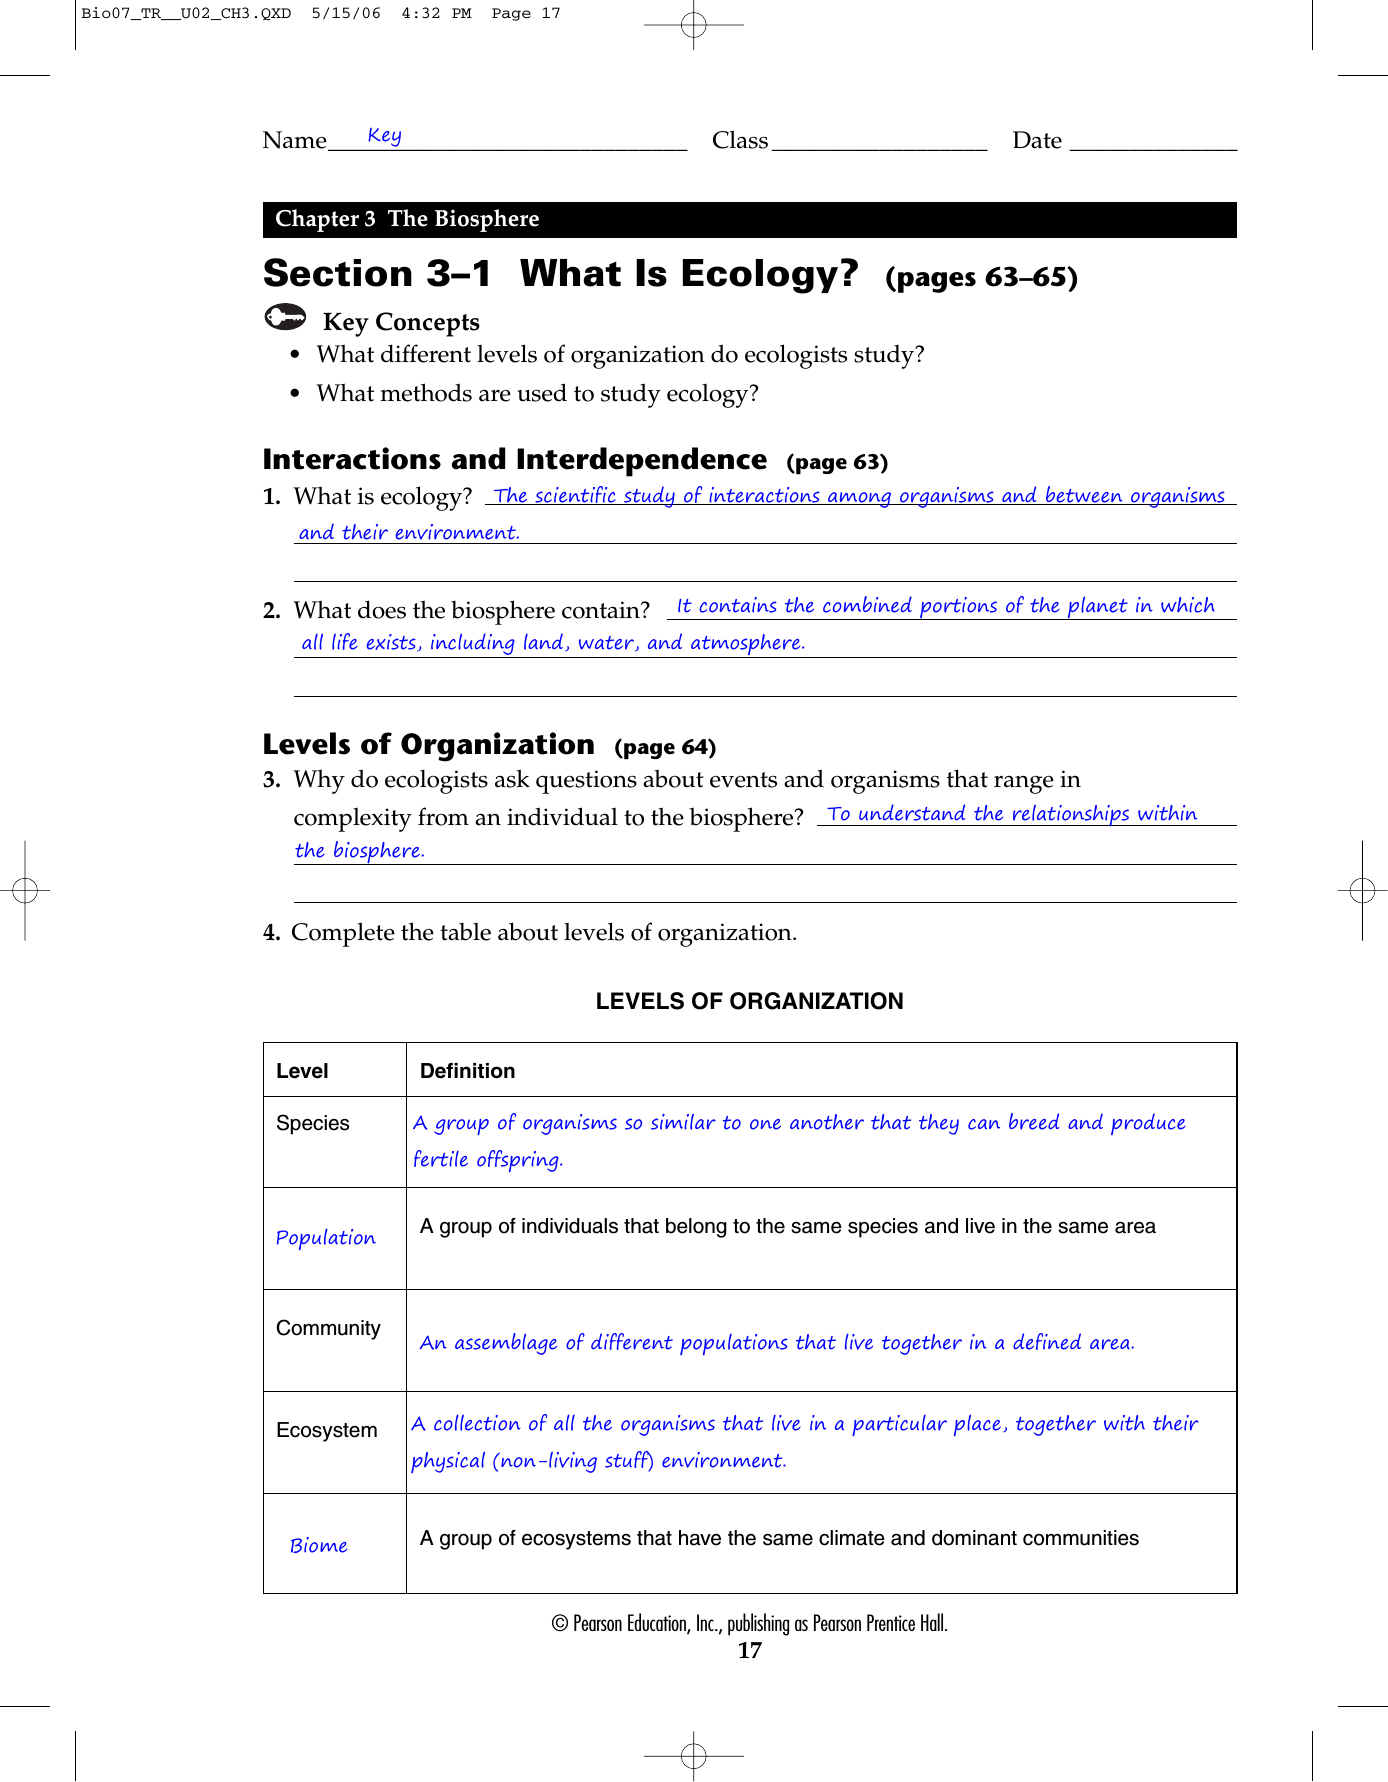 Chapter 3 Principles Of Ecology Worksheet Answers ...